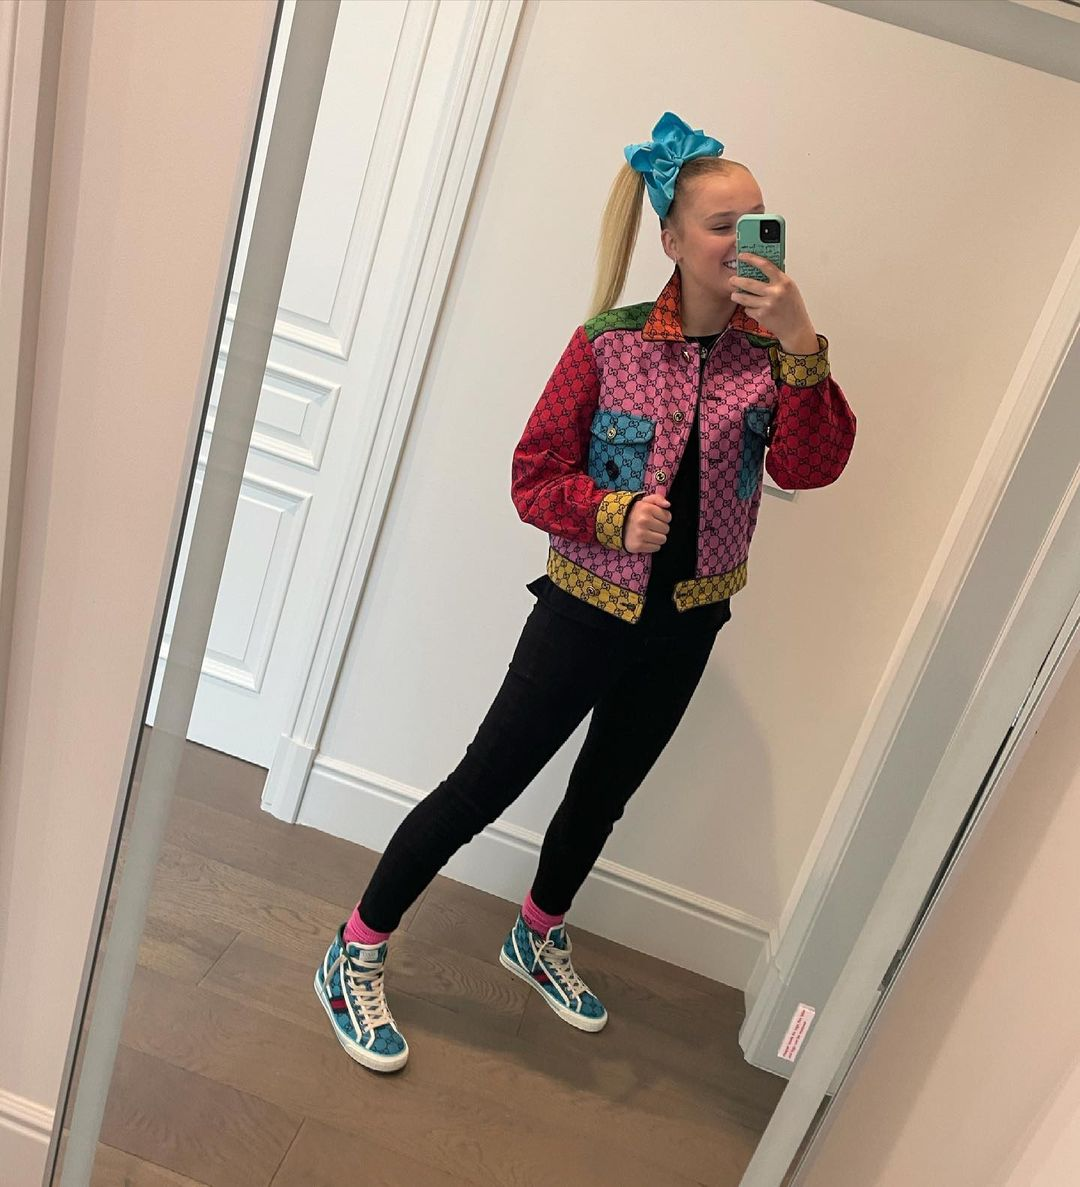 jojo siwa says leaving behind her signature bow was harder than coming out to her mom3